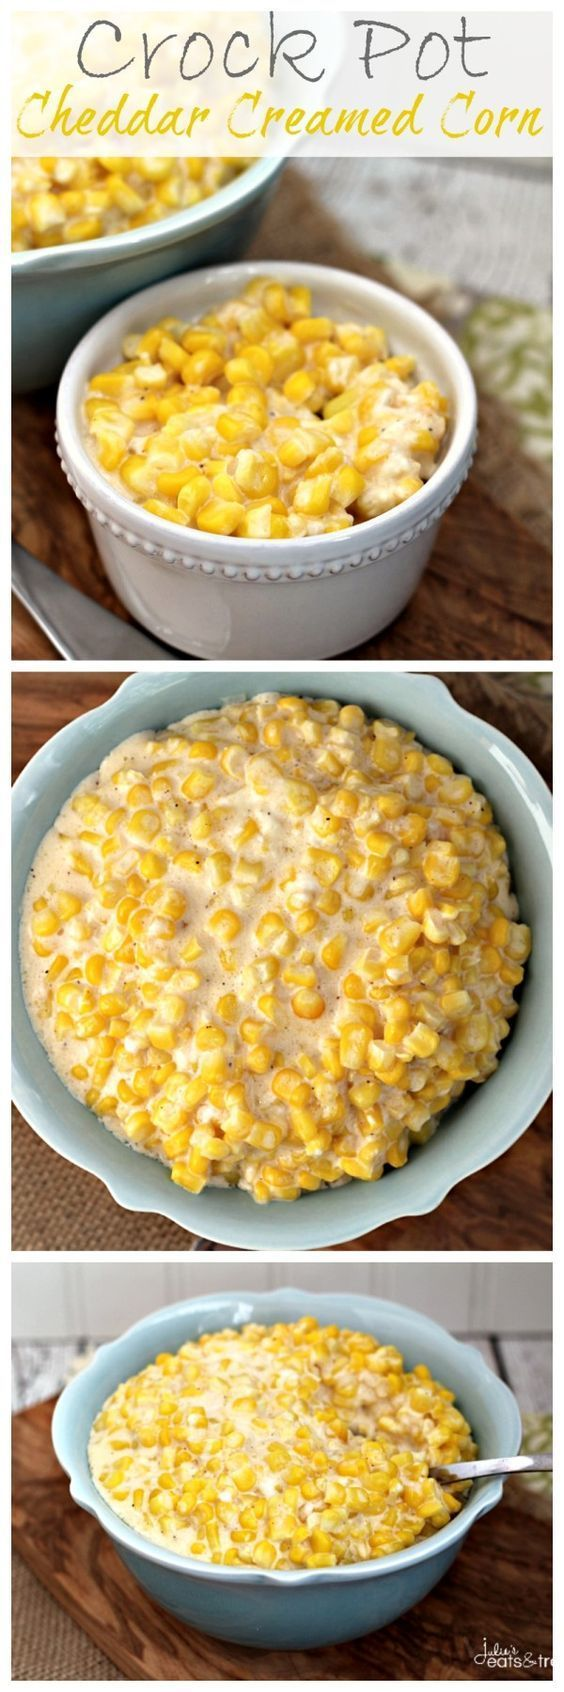 The perfect easy side dish for your main dish! Throw it in the Crock Pot!